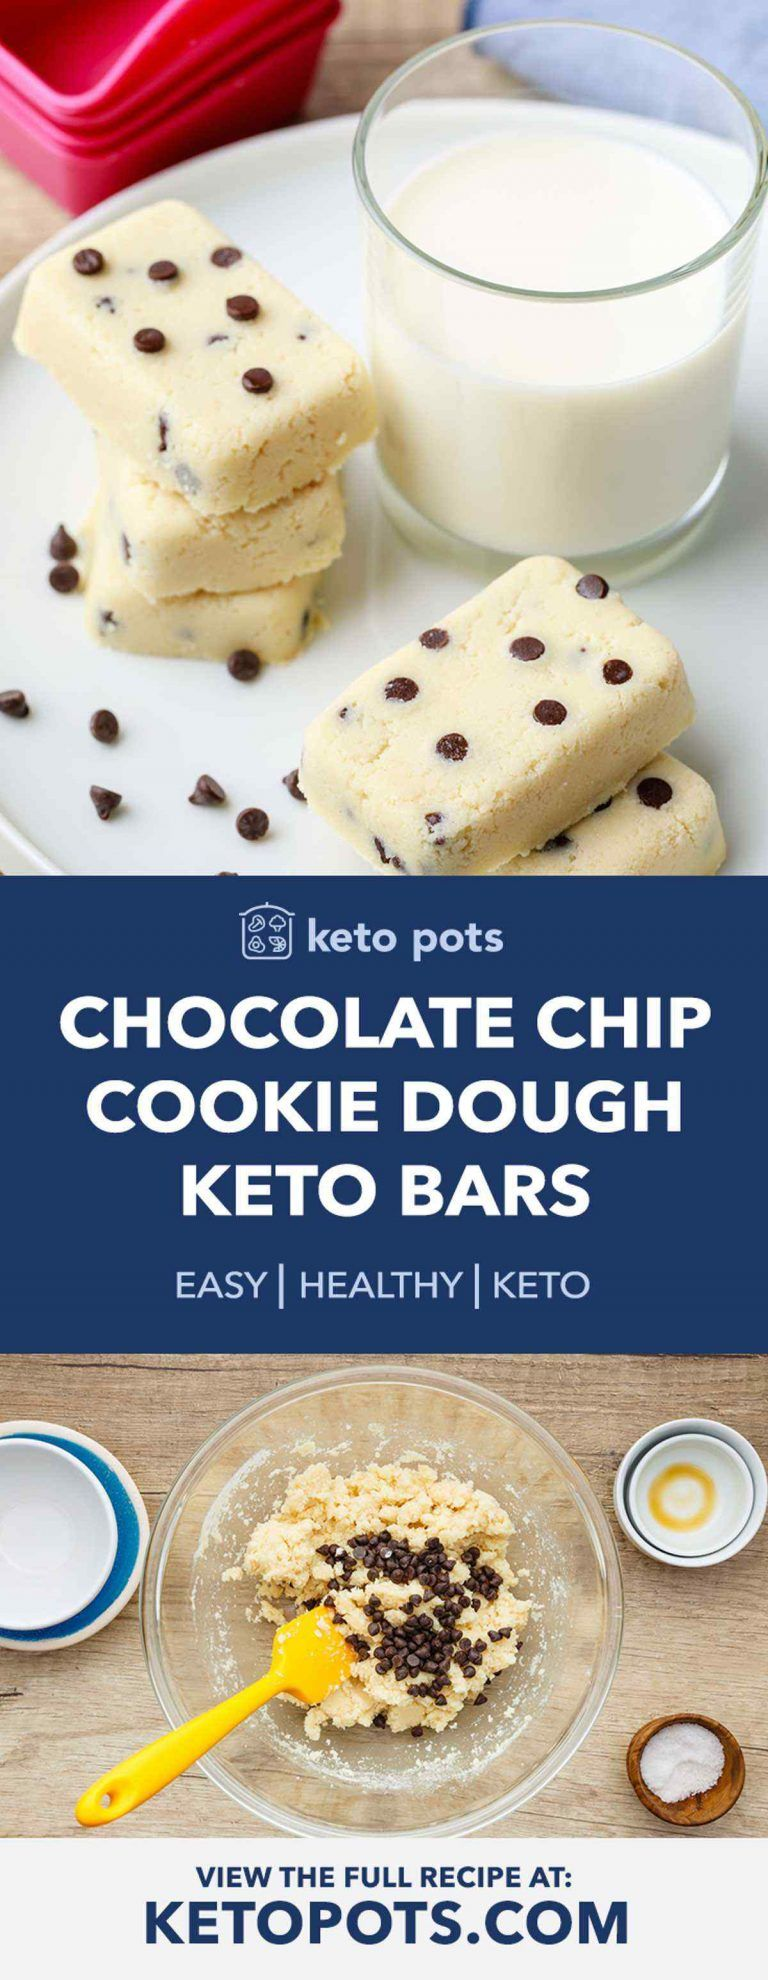 Keto Chocolate Chip Cookie Dough Protein Bars - Keto Pots #proteincookiedough